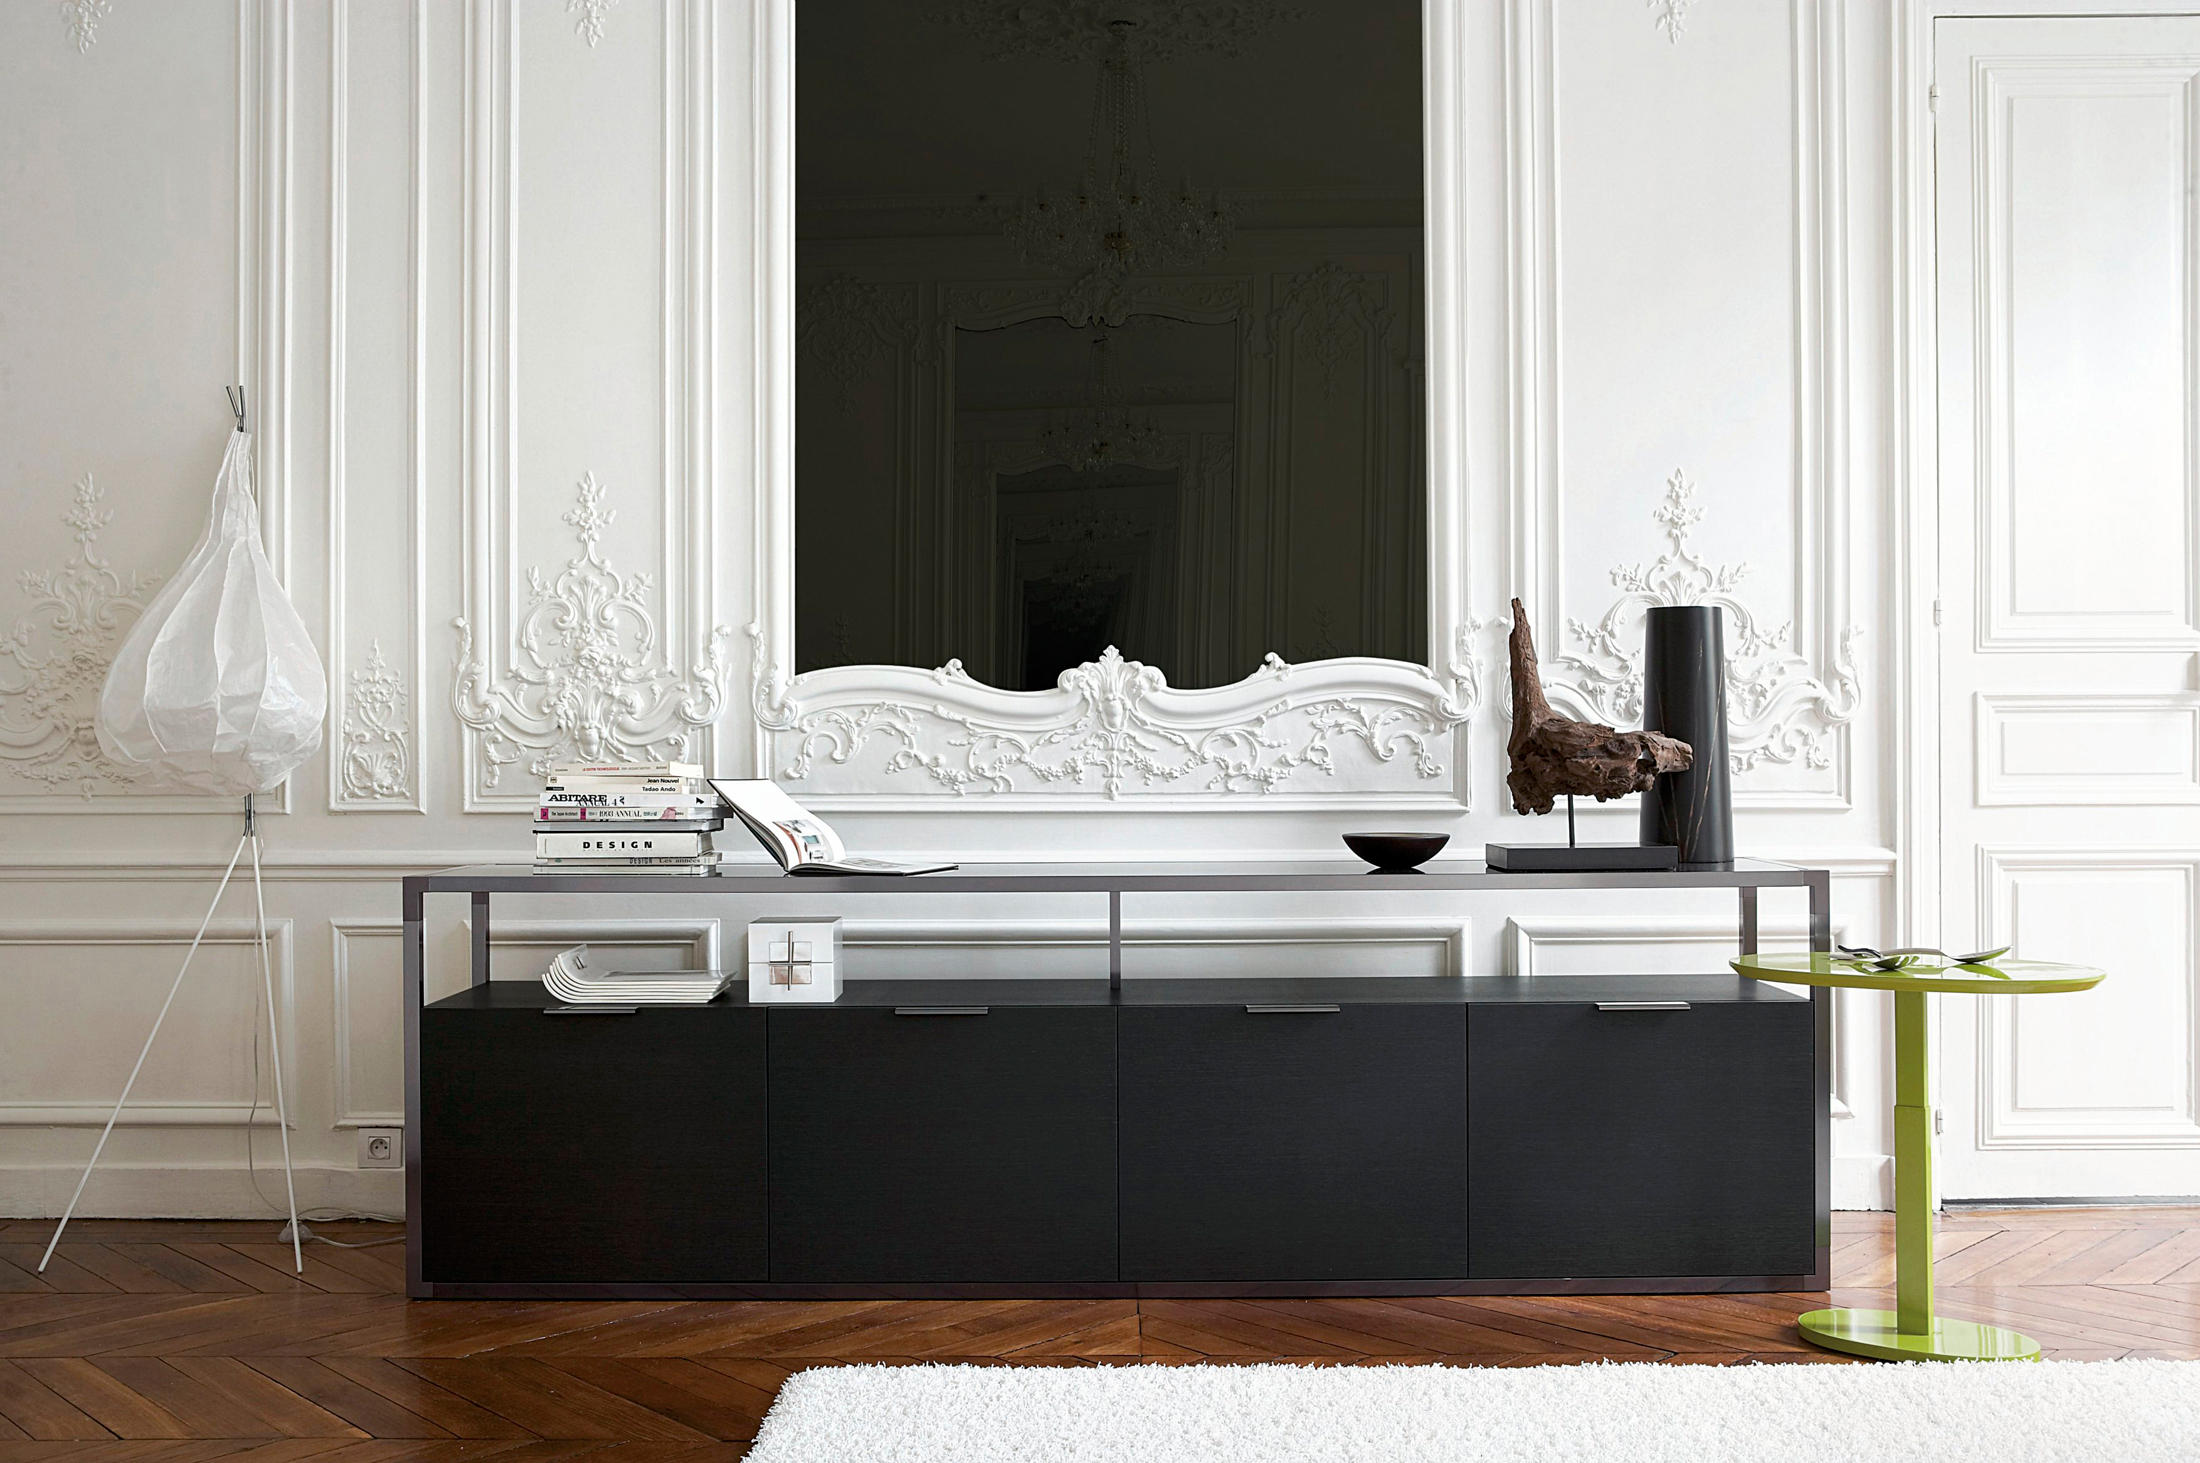 Ligne Roset Meuble Tv - Dedicato Sideboard Sideboards From Ligne Roset Architonic[mjhdah]https://images.ligne-roset.com/cache/PRODUCT/PRODUCT_01/living/p/r/products_01_living_1836x11007.jpg